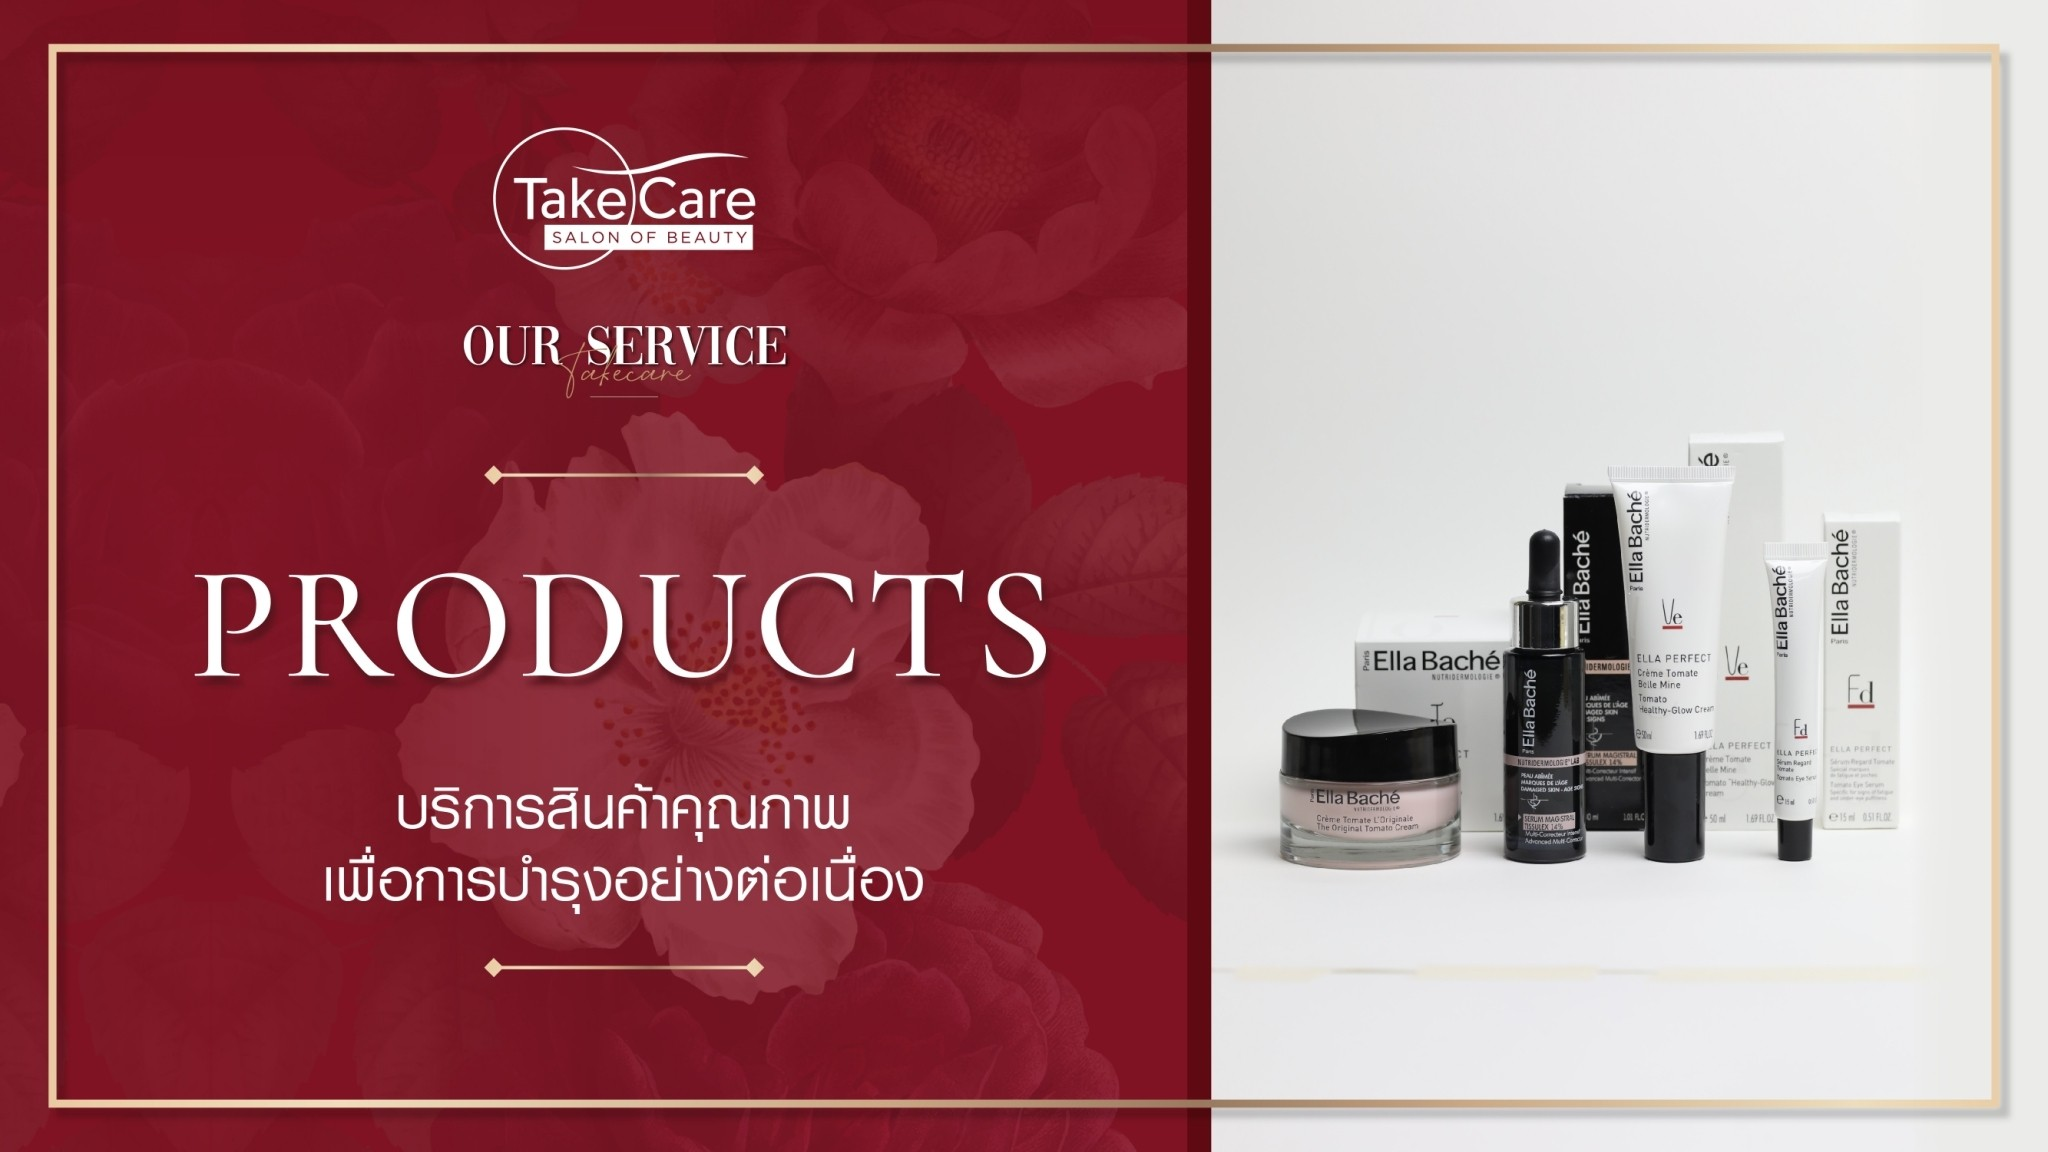 Product at Take Care